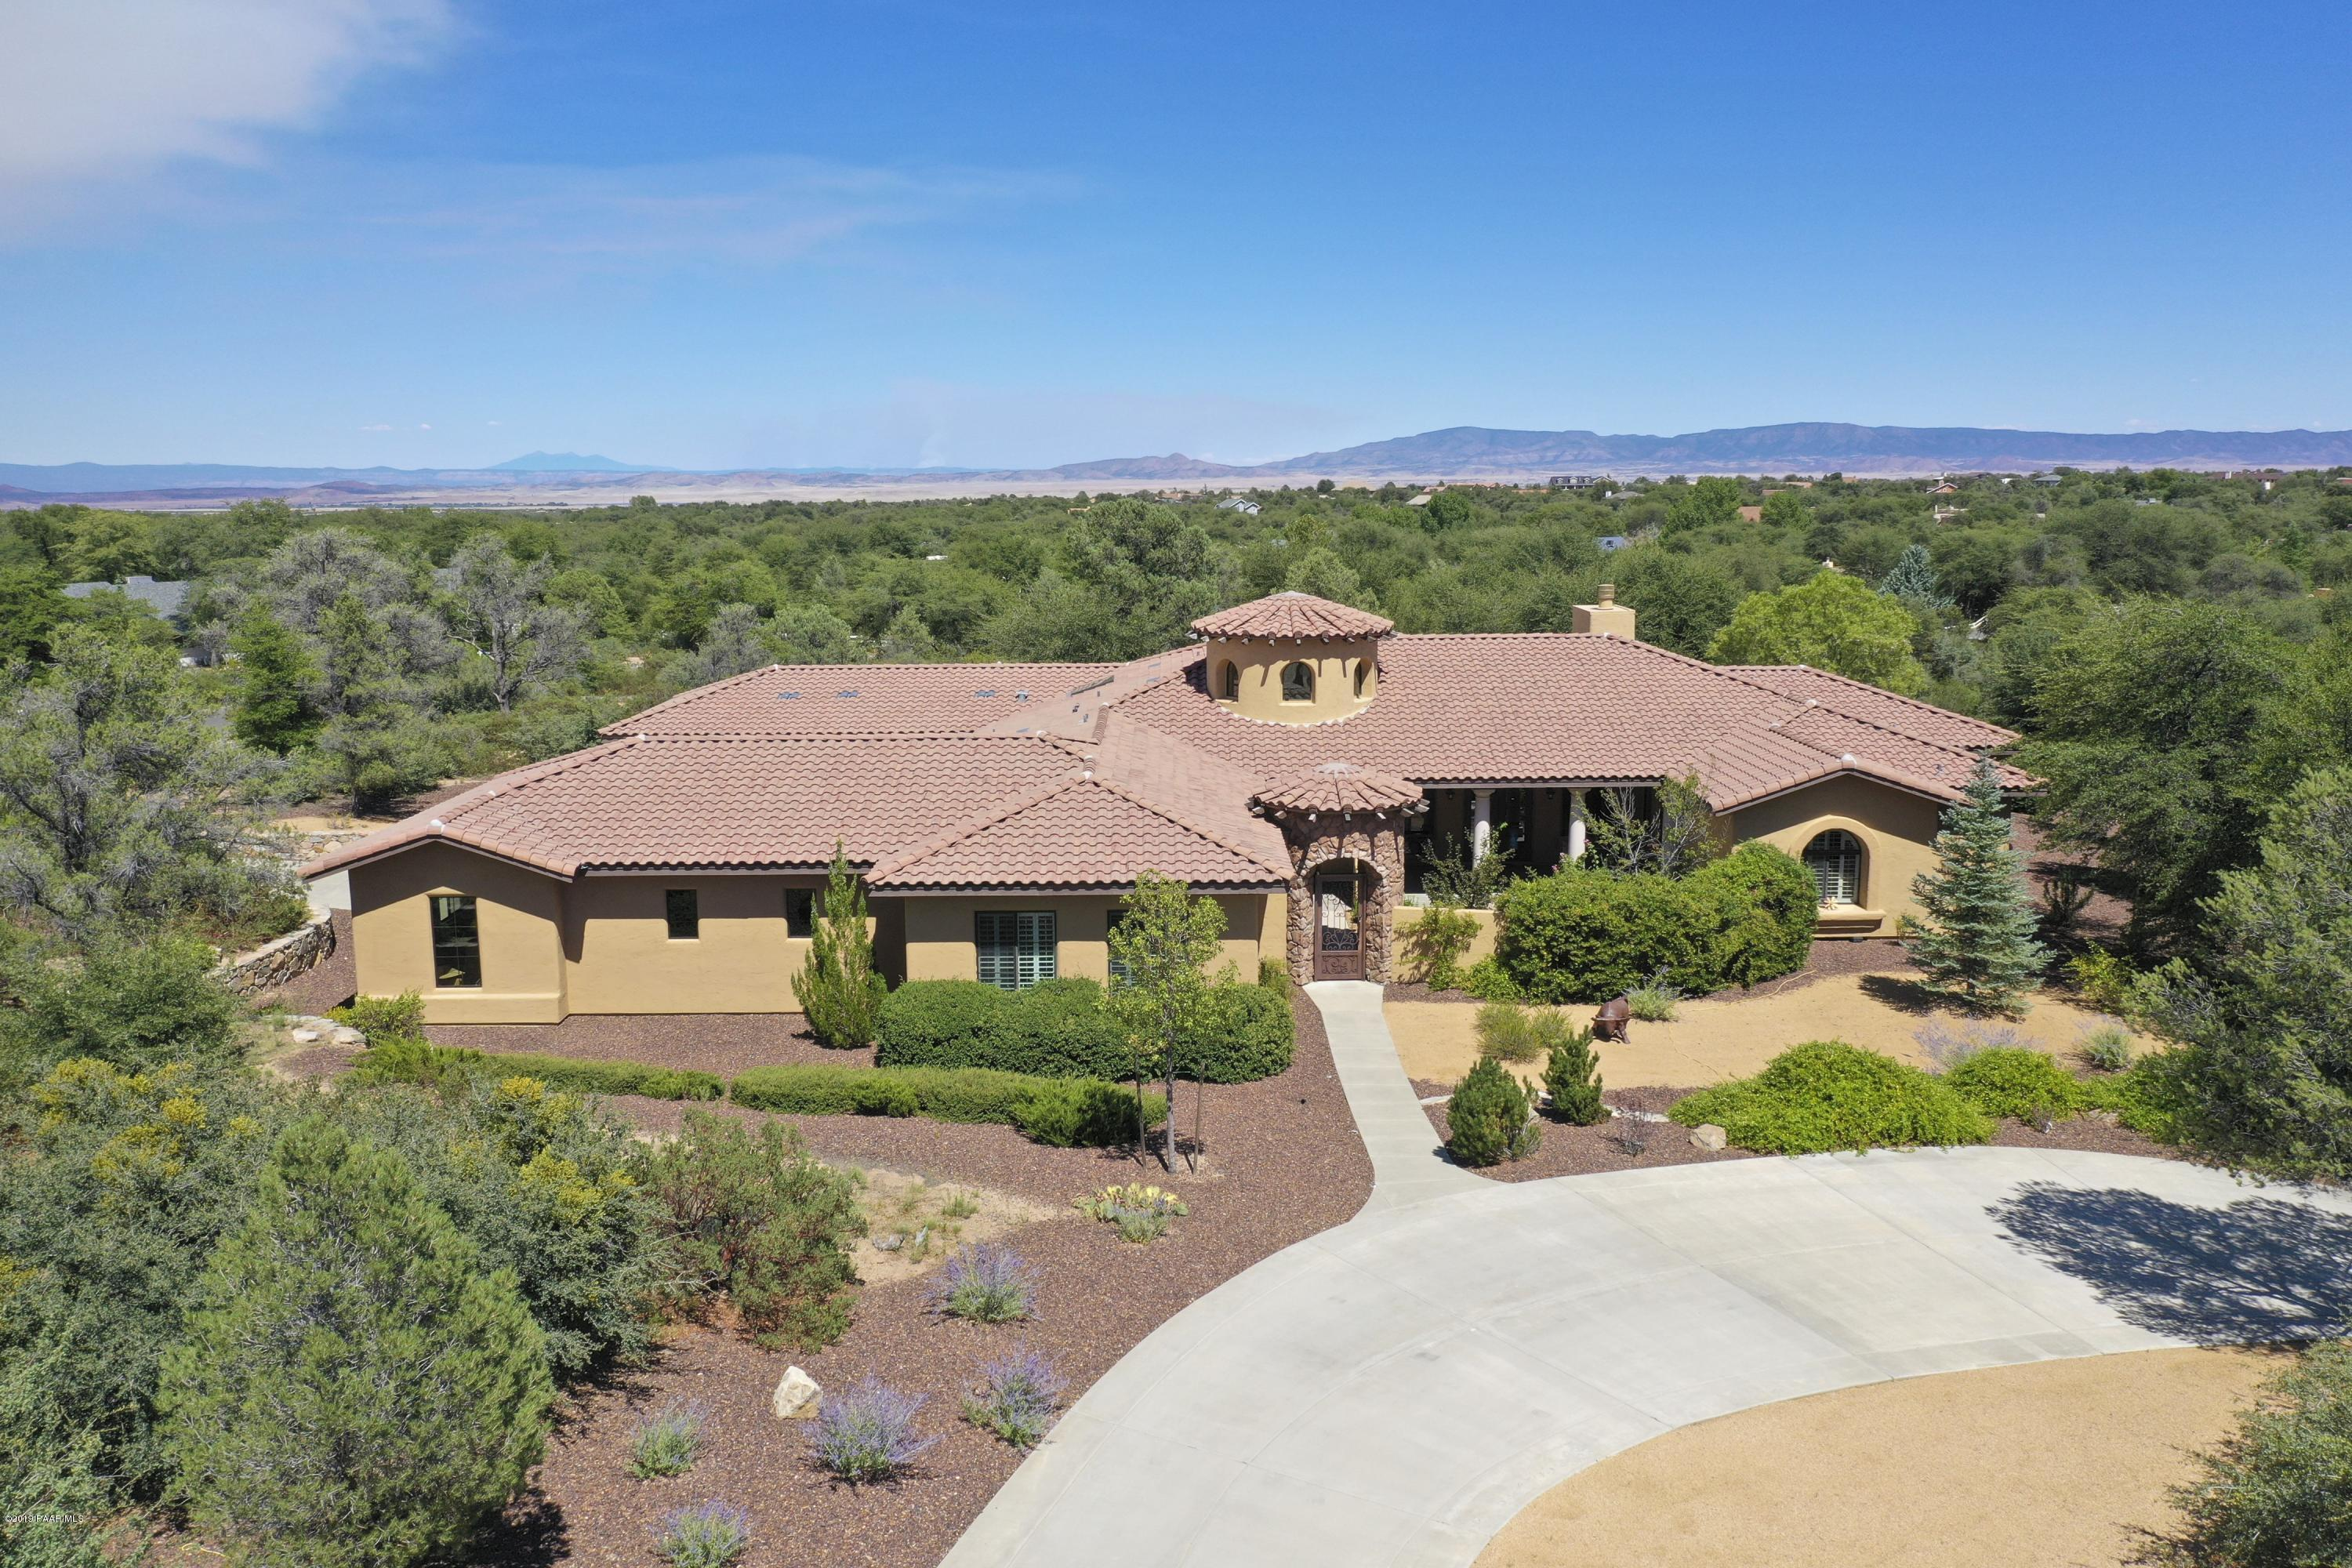 Photo of 2605 Mesa Oak, Prescott, AZ 86305